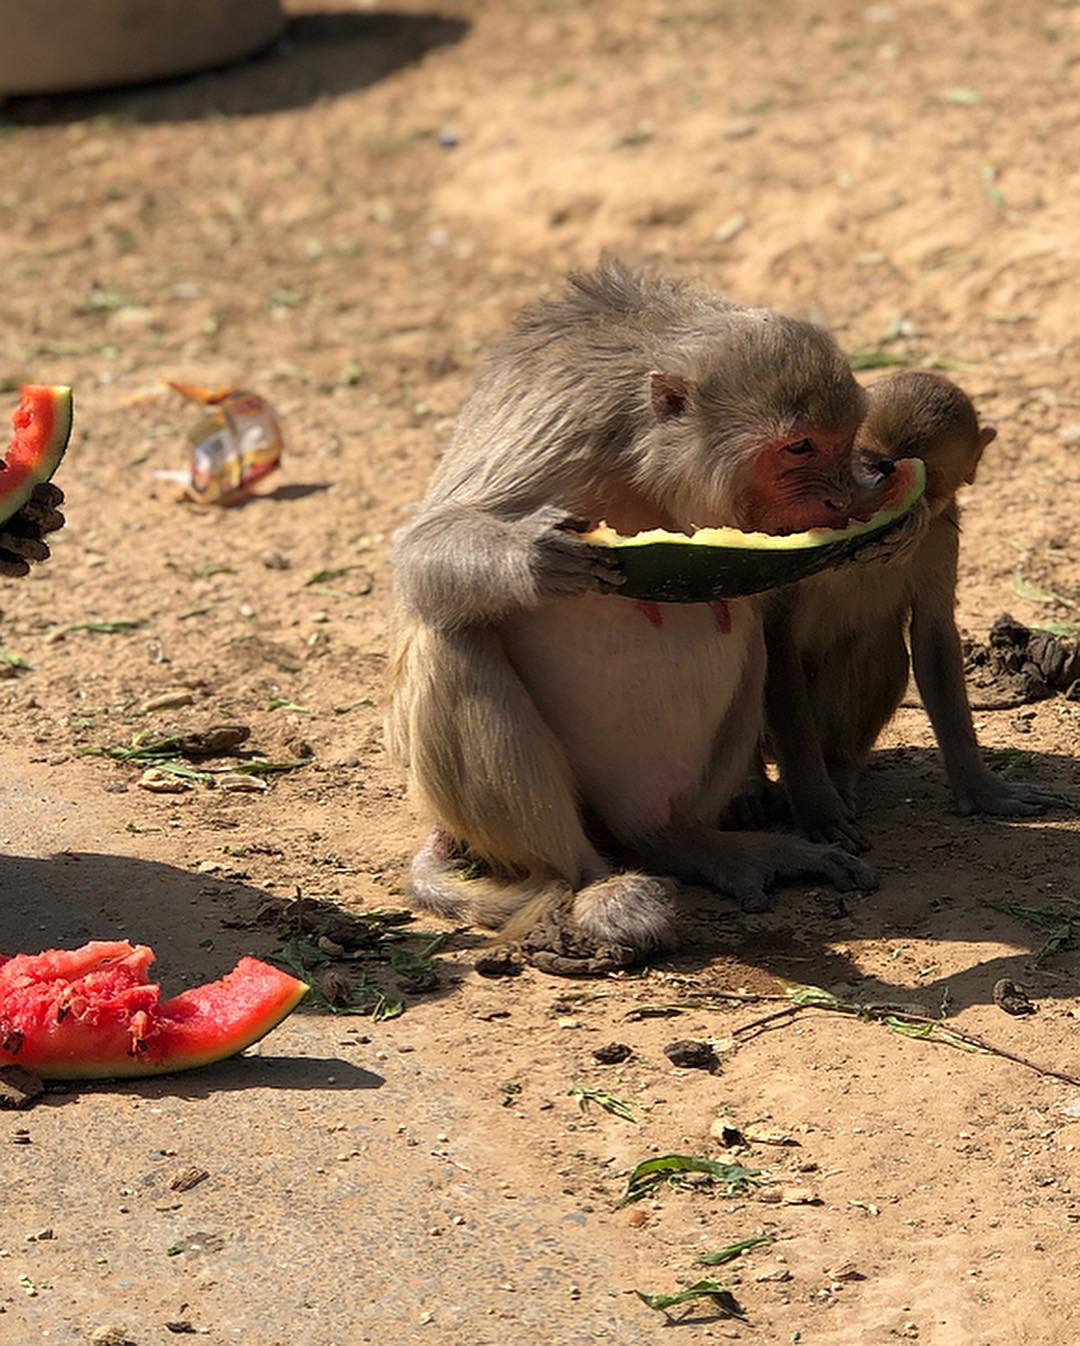 That's the piece of melon I fed to this little chap. I love this photo.  We arrived in Delhi for our over night stop before our early flight to Mumbai.